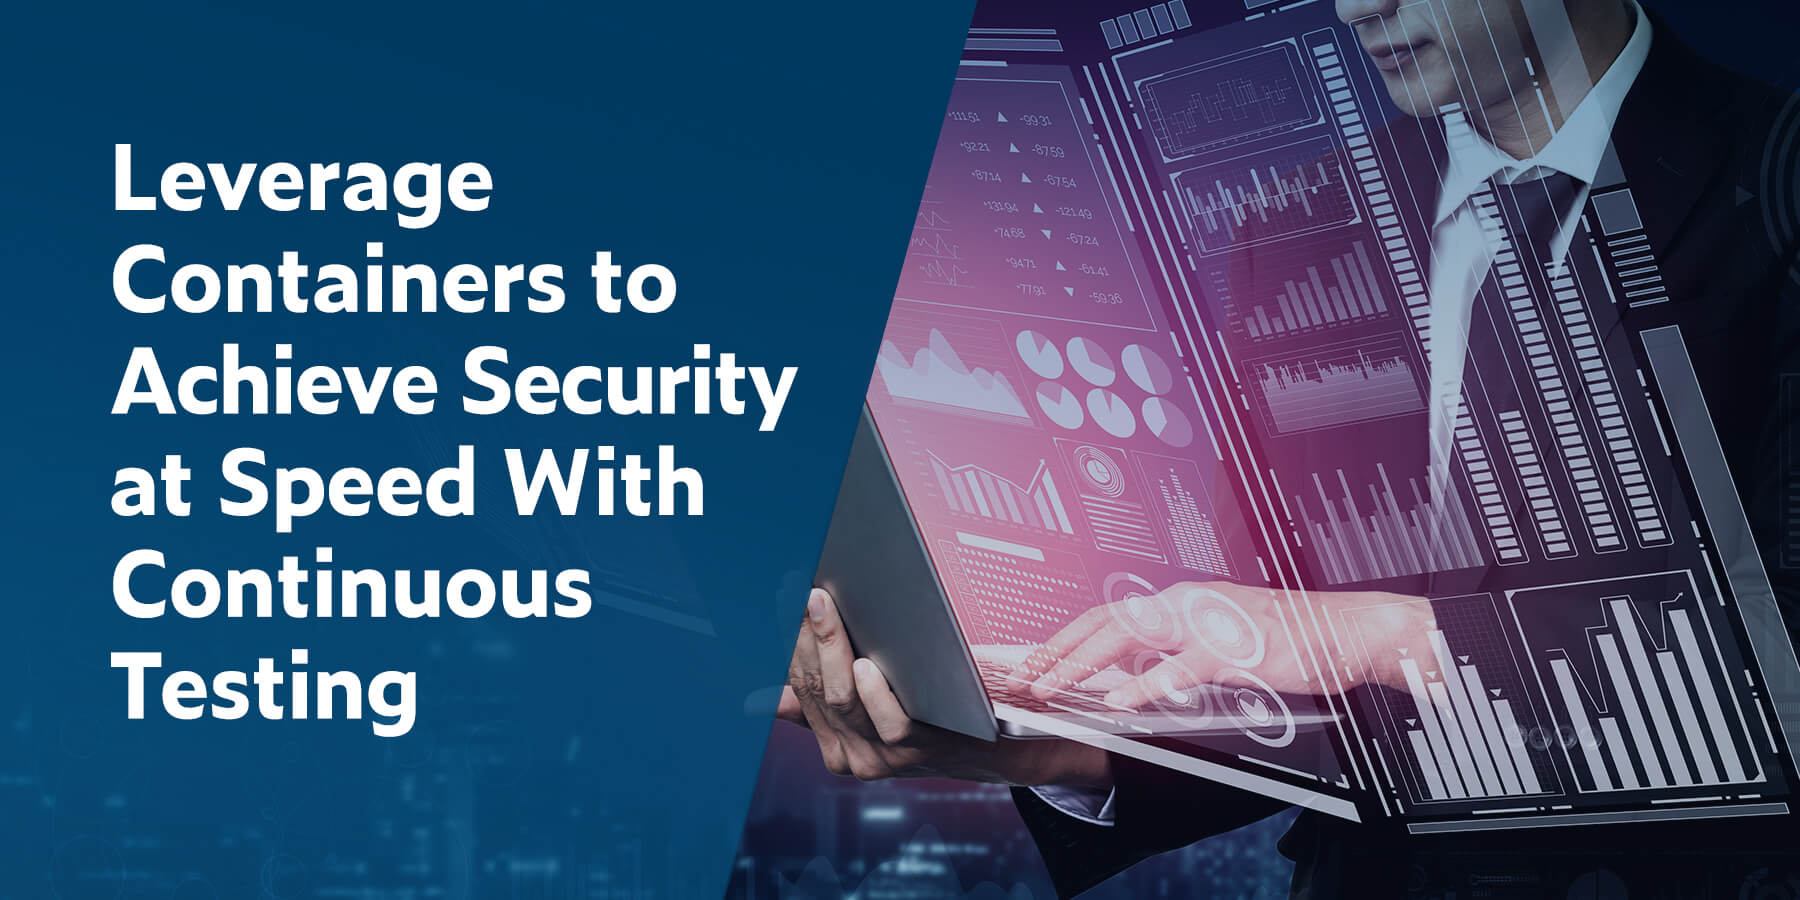 Leverage Containers to Achieve Security at Speed With Continuous Testing